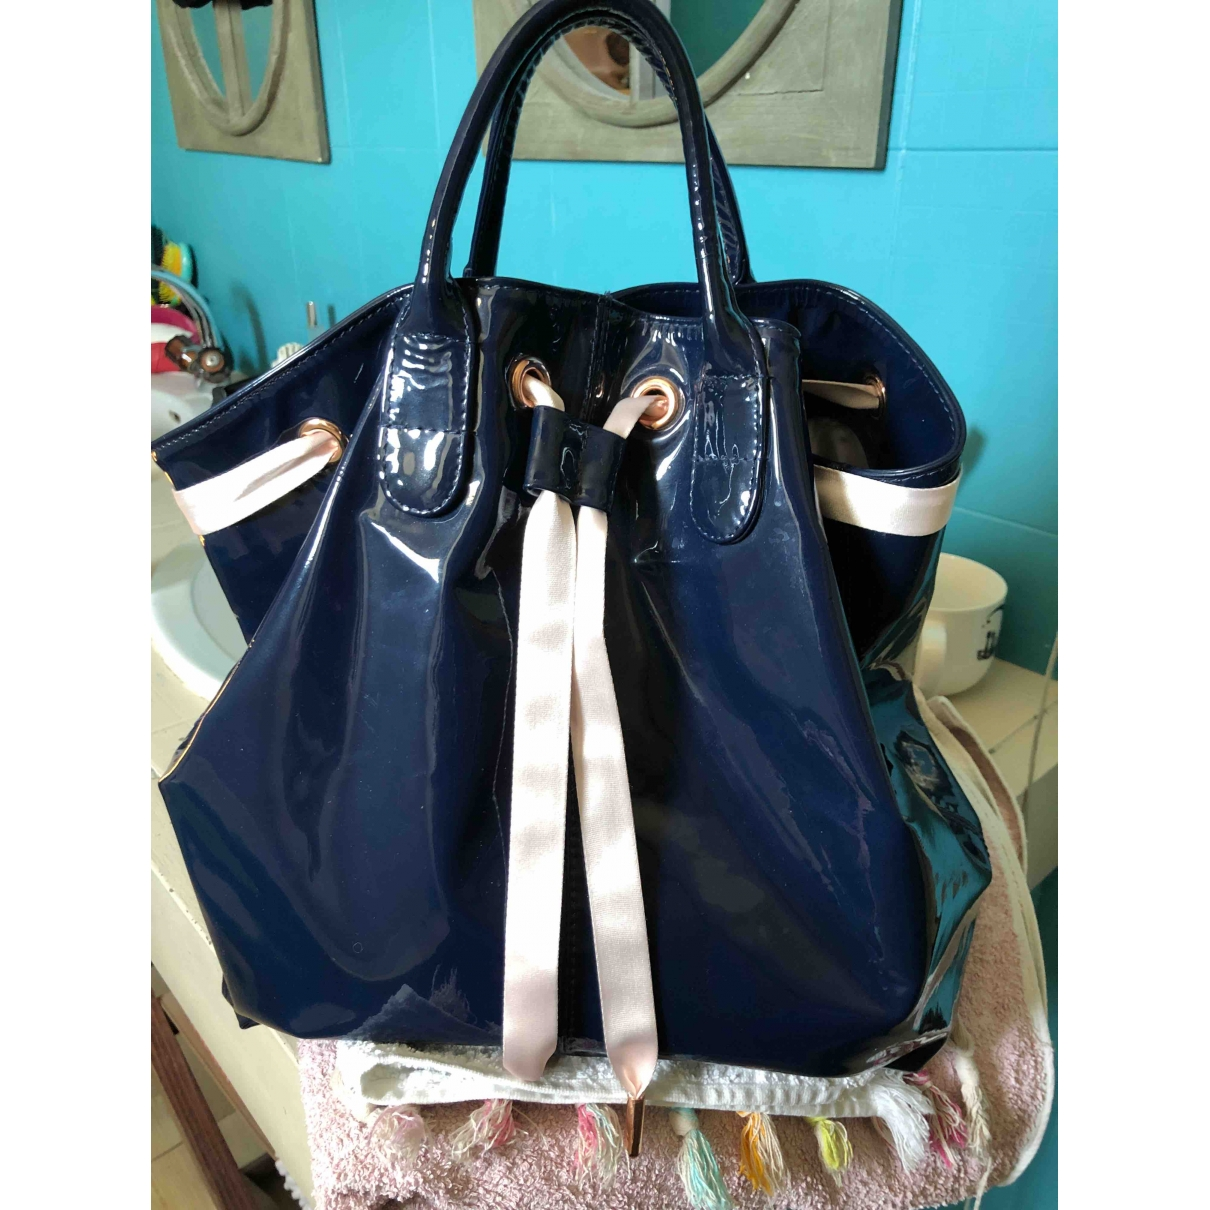 Repetto \N Navy Patent leather handbag for Women \N